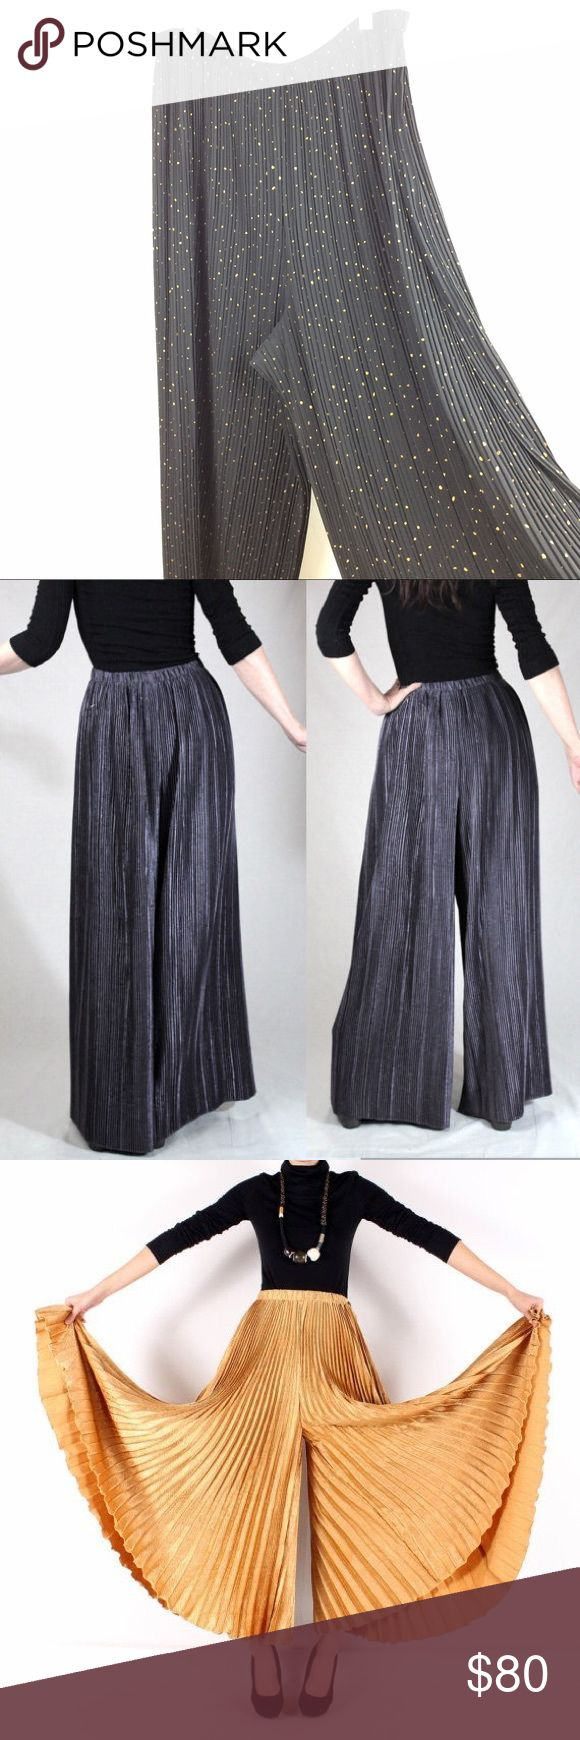 1000 Ideas About High Waisted Palazzo Pants On Pinterest